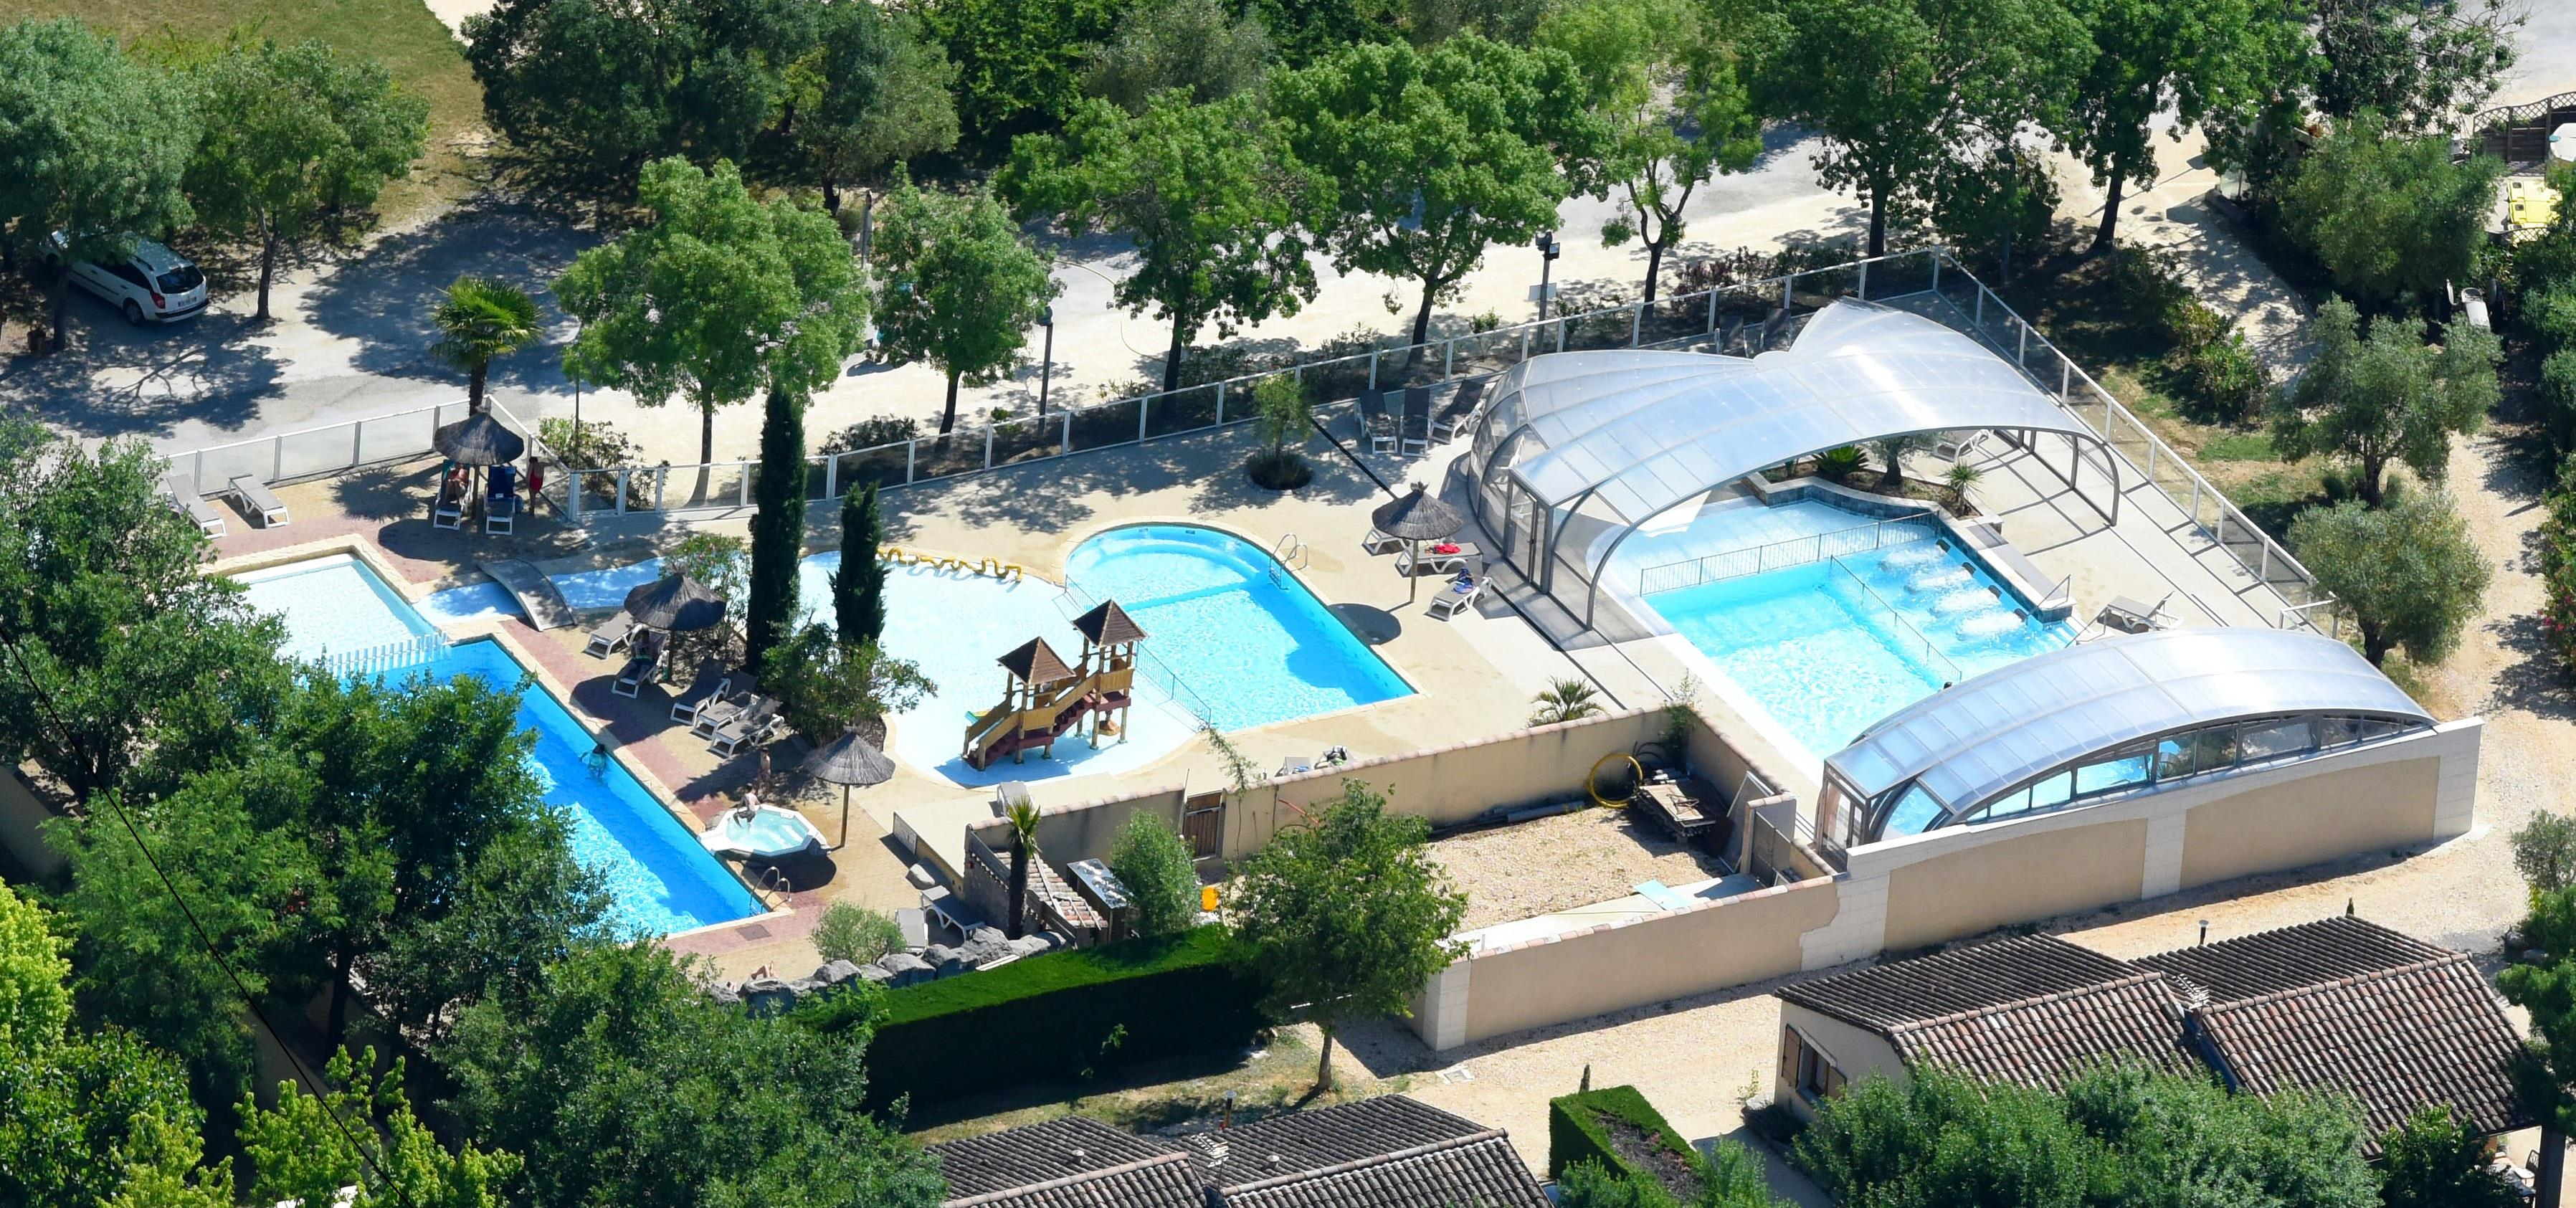 Bathing Camping Les Coudoulets - Pradons